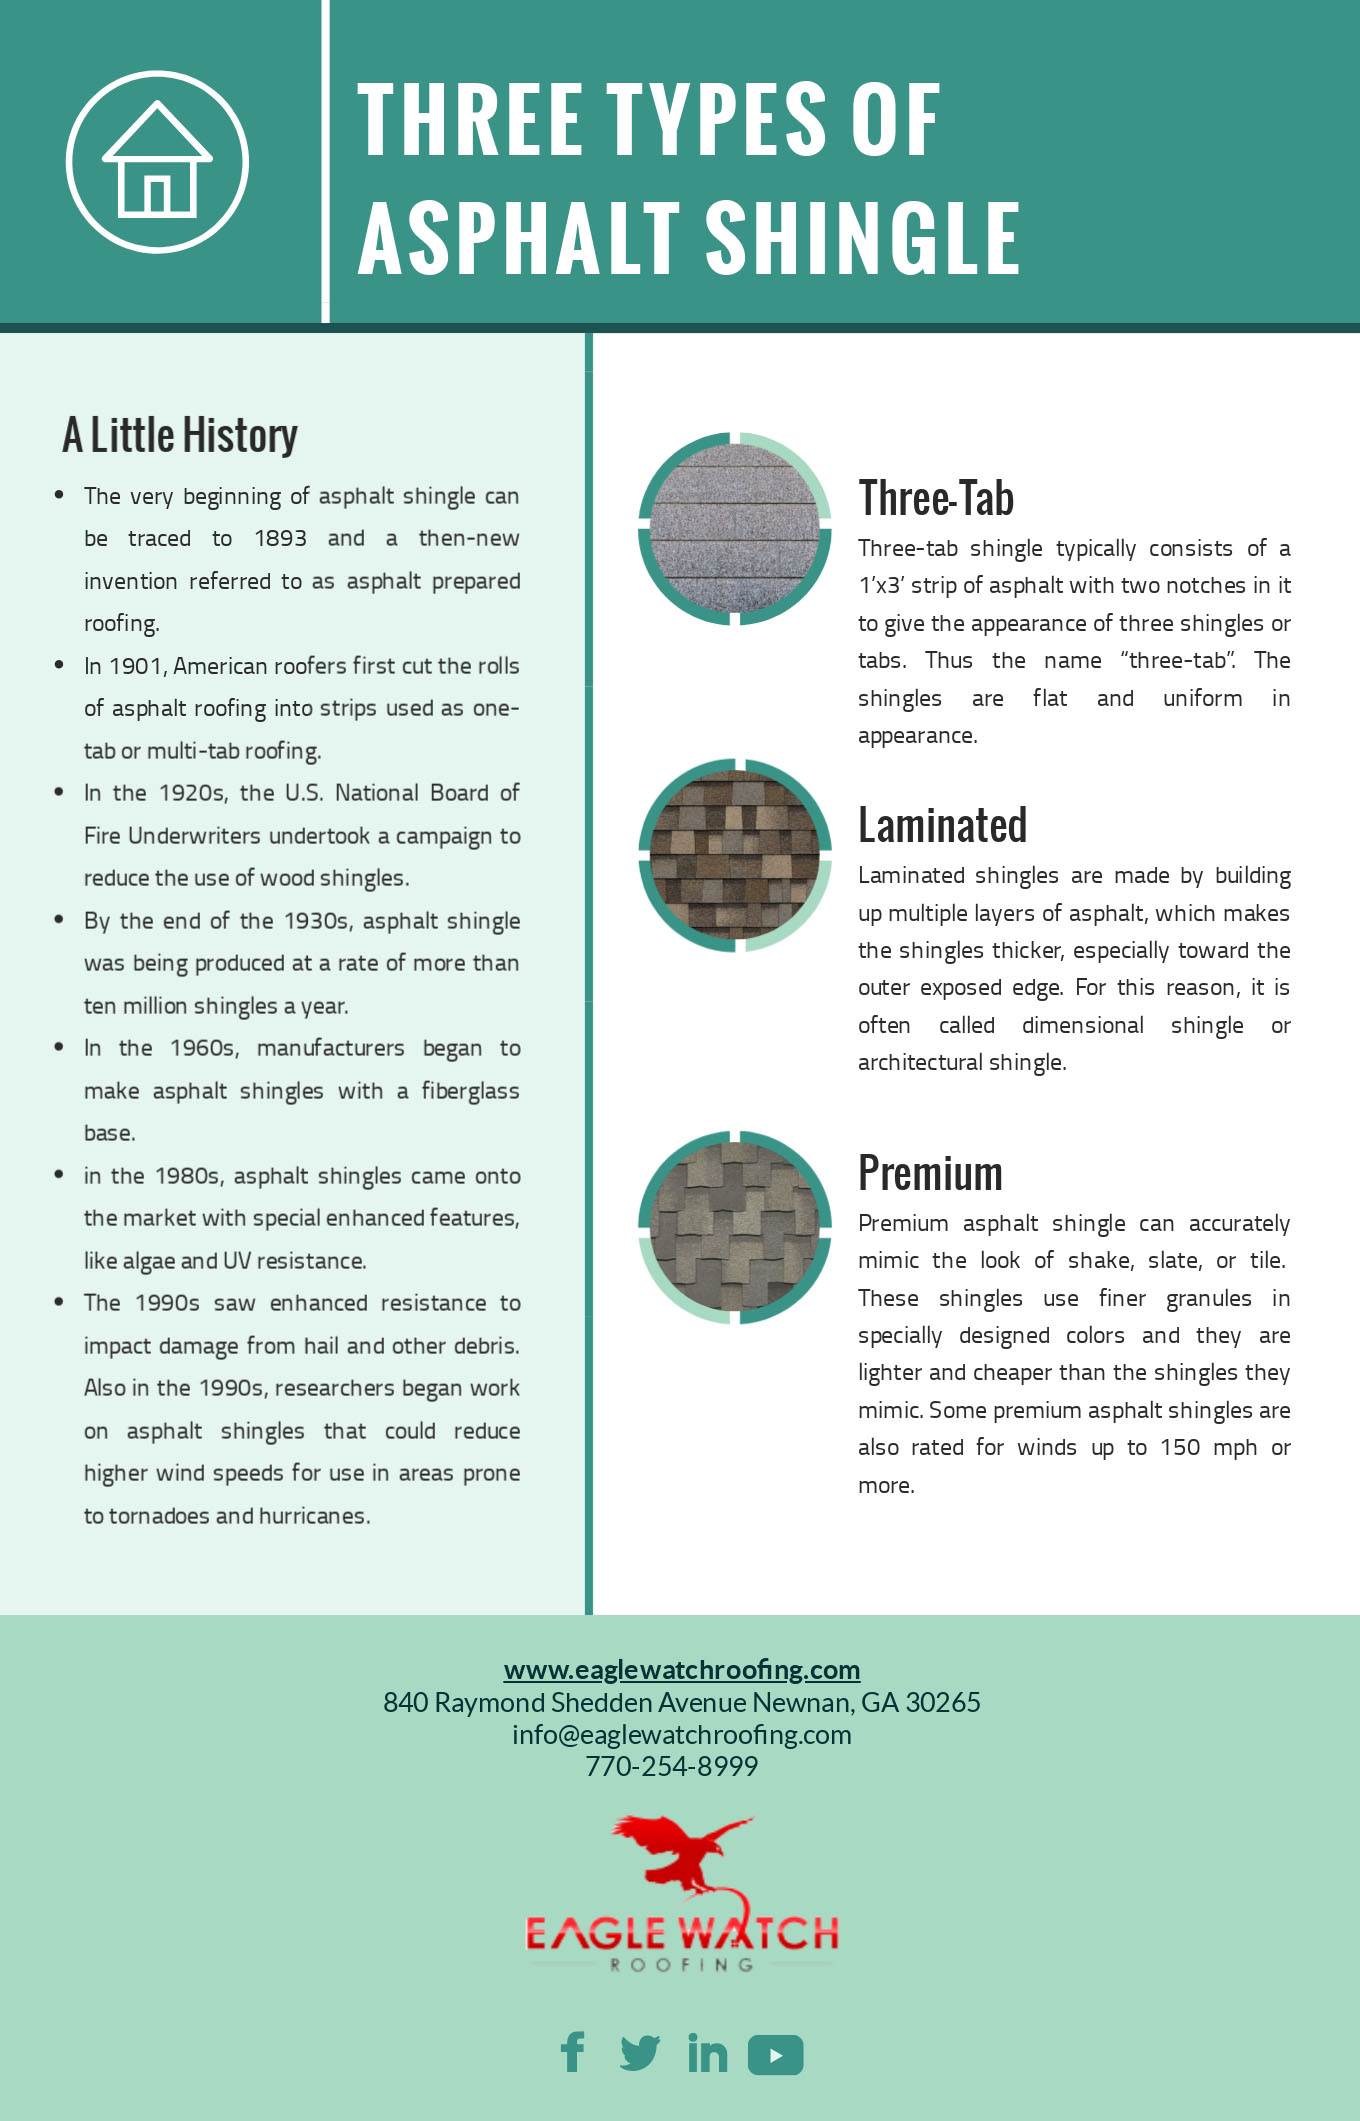 Three Types of Asphalt Shingle [infographic]